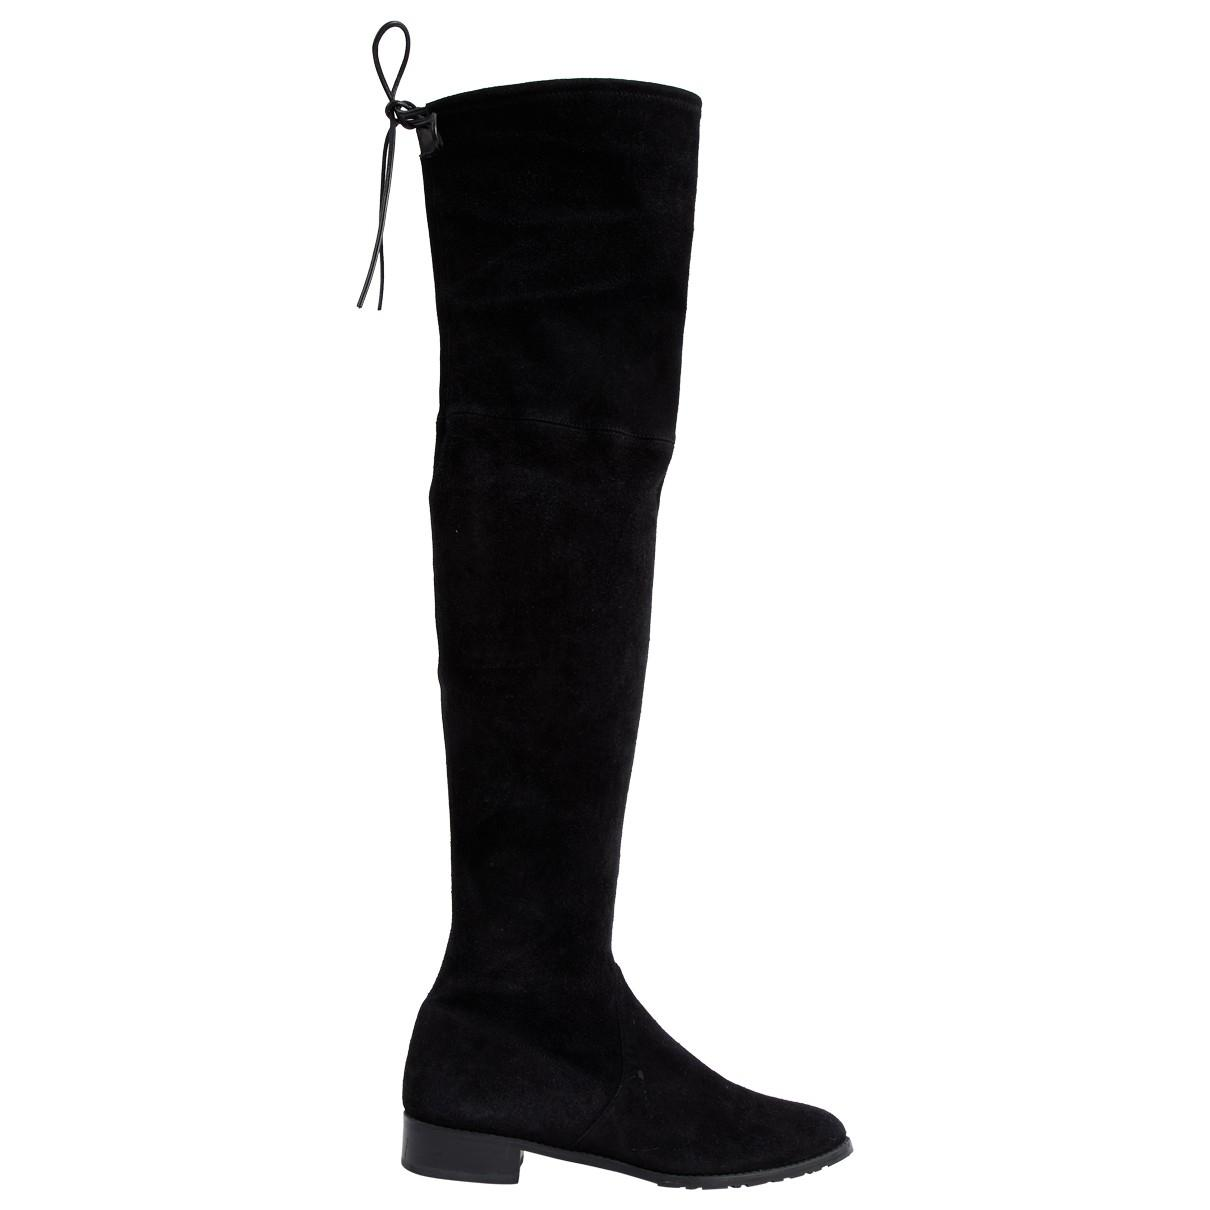 Owned Riding Weitzman Boots In Black Lyst Stuart Pre q7SattA